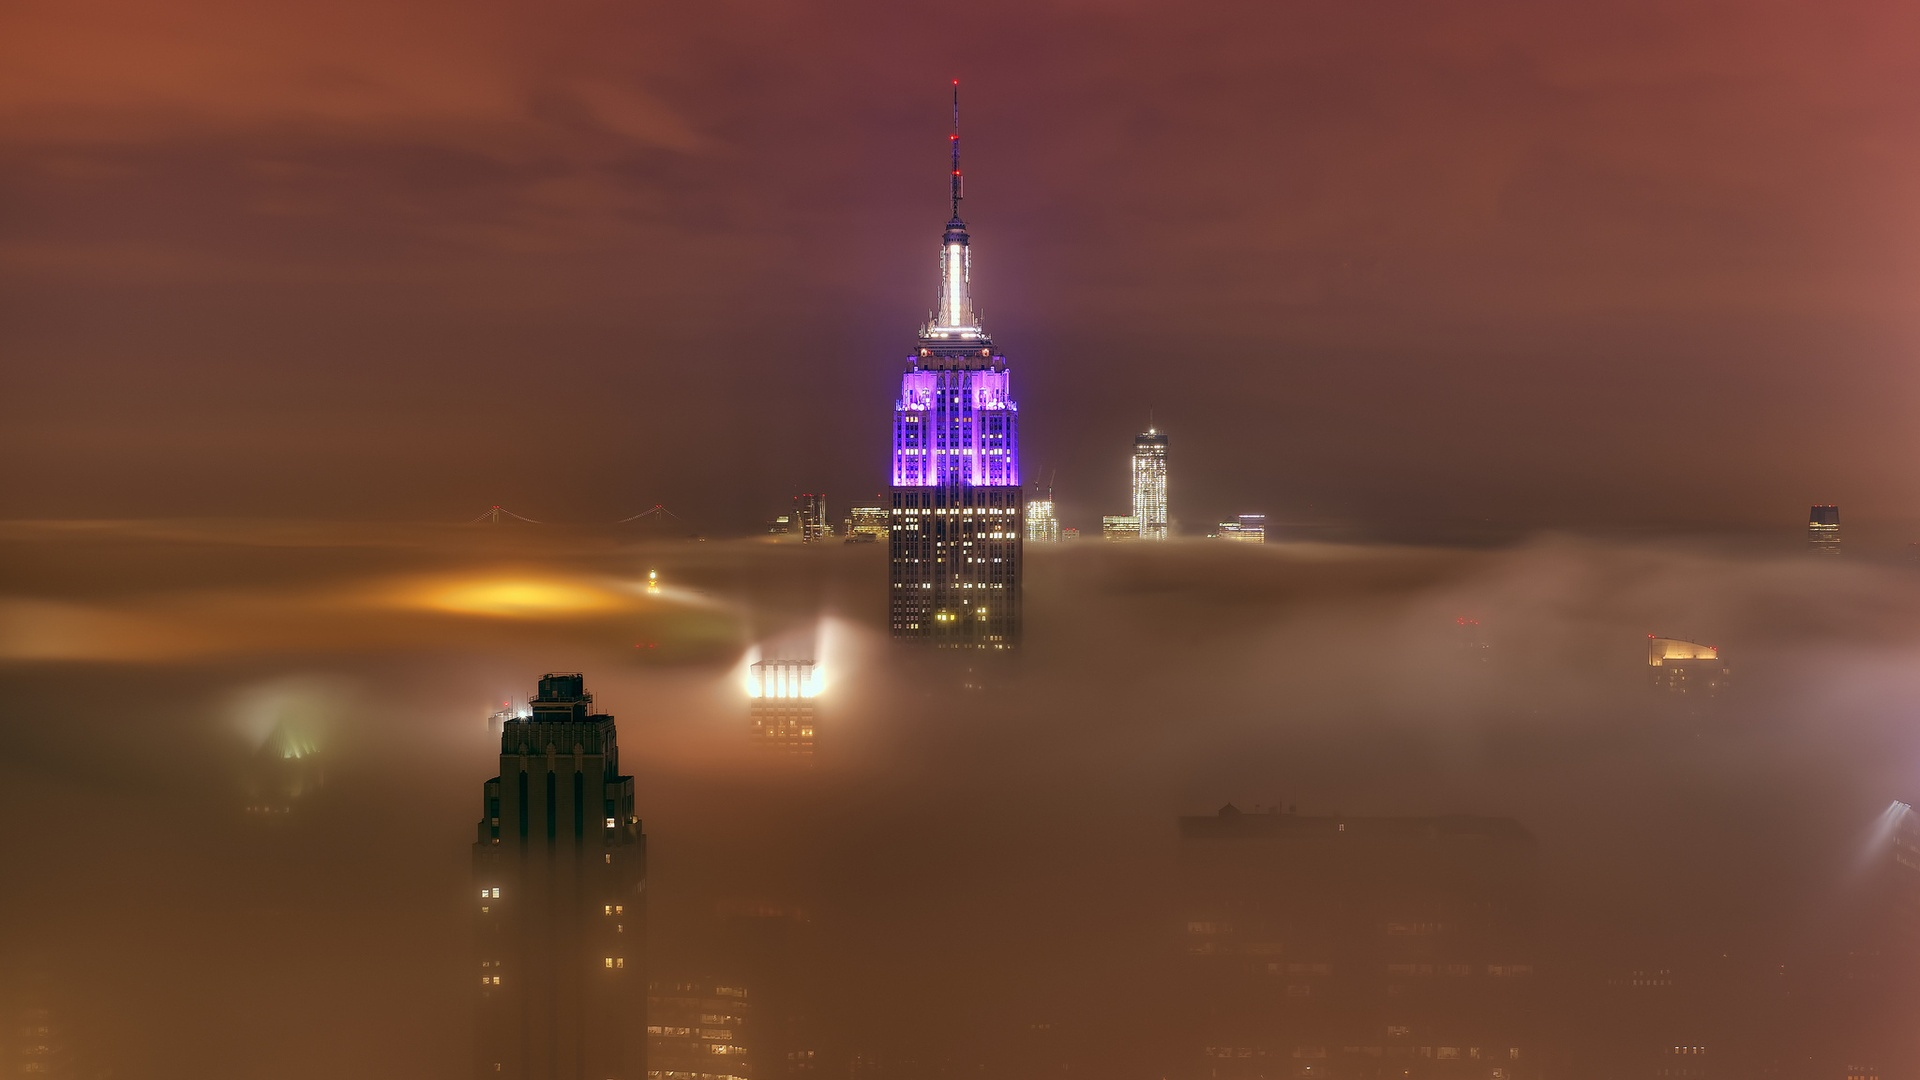 Empire state foggy